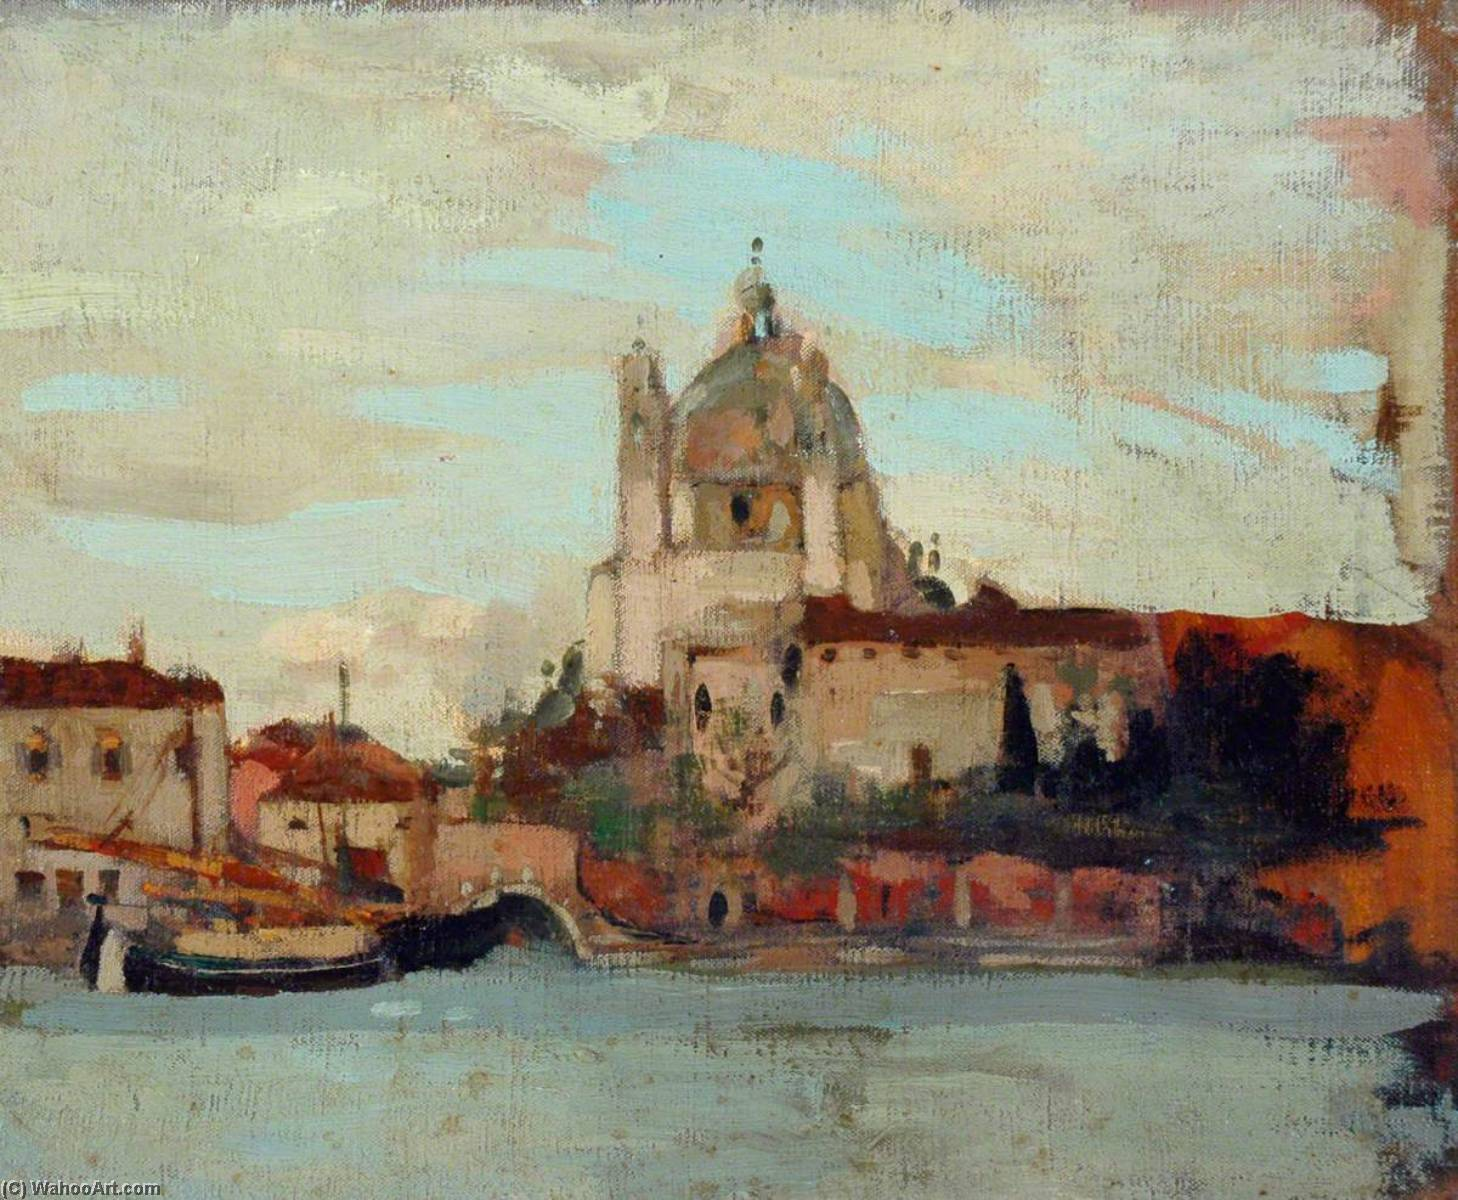 Venice, Oil On Canvas by James Kerr Lawson (1862-1939)